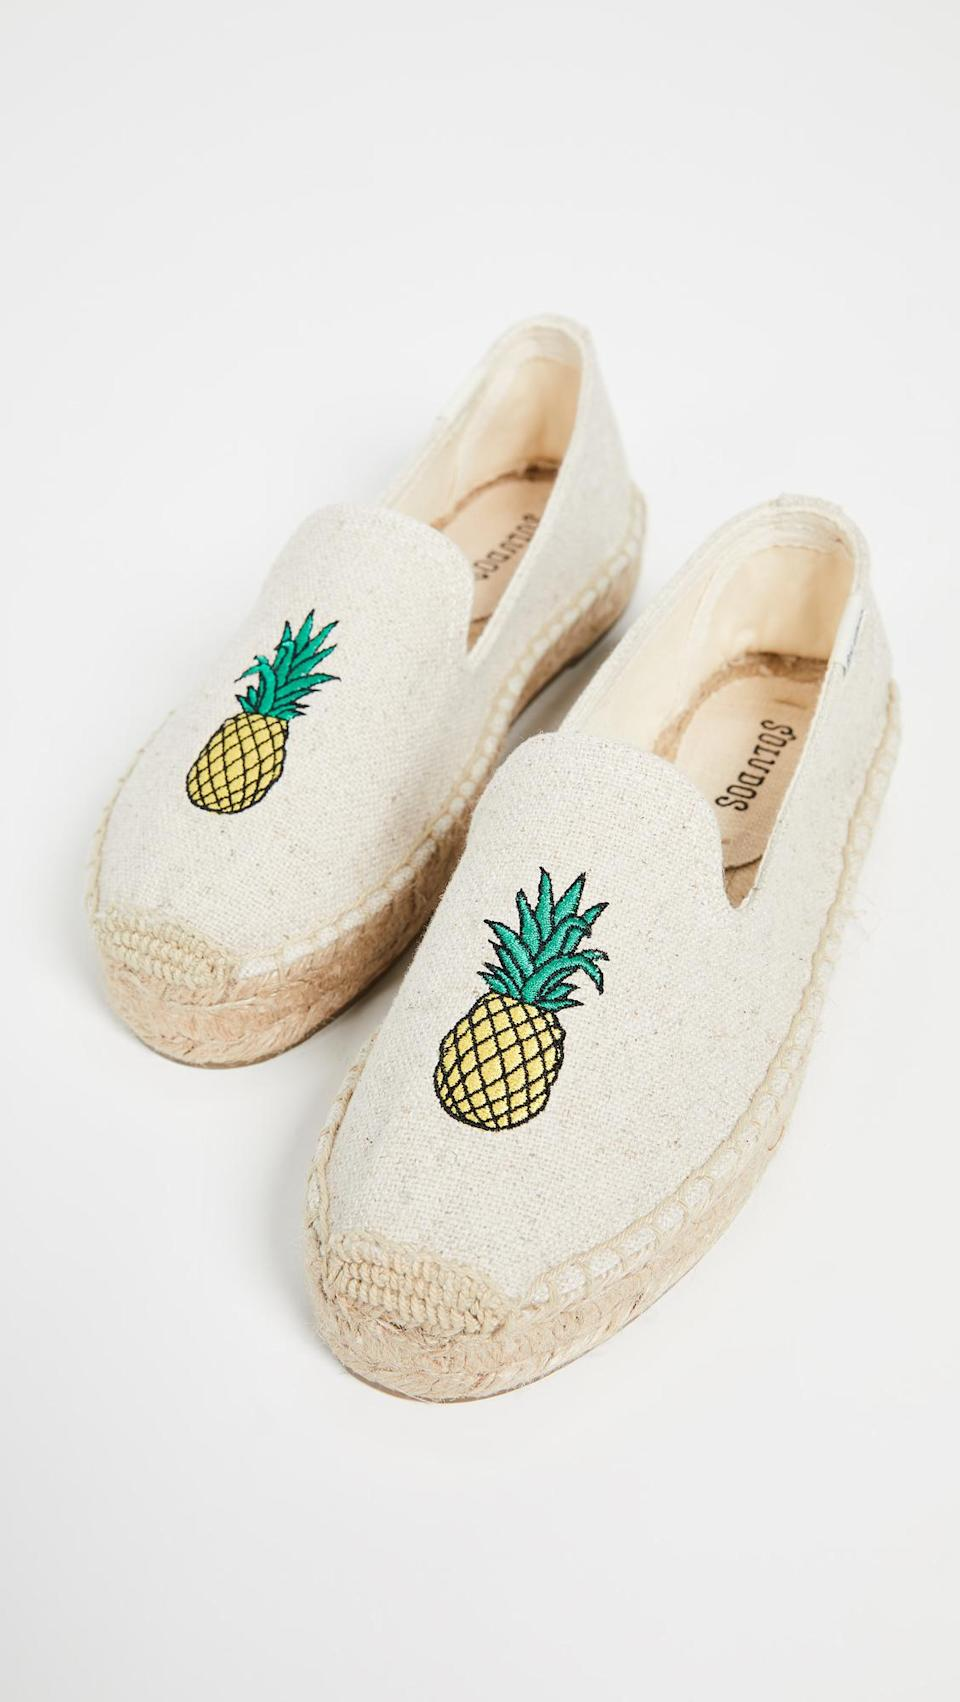 <p>And pineapple espadrilles are also a summer staple.</p>